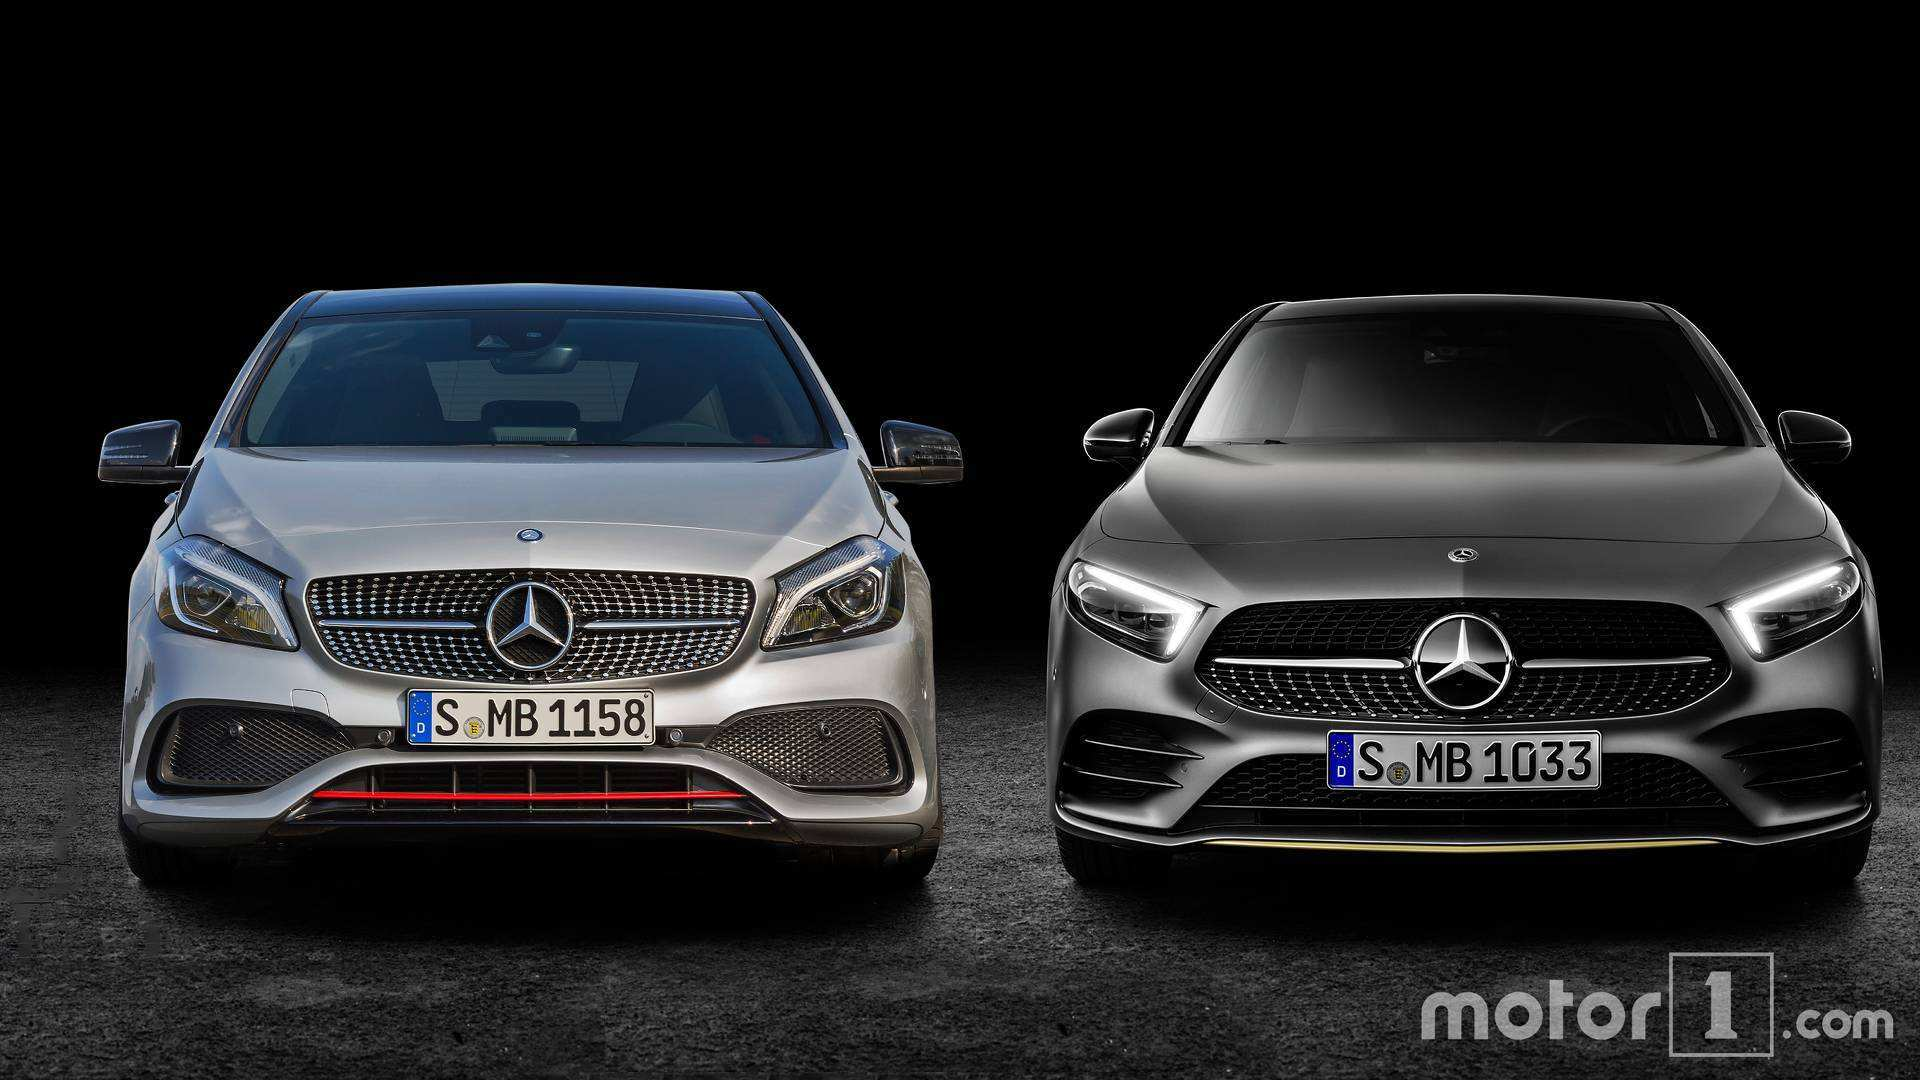 64 All New Mercedes A200 Amg Line 2019 Rumors for Mercedes A200 Amg Line 2019